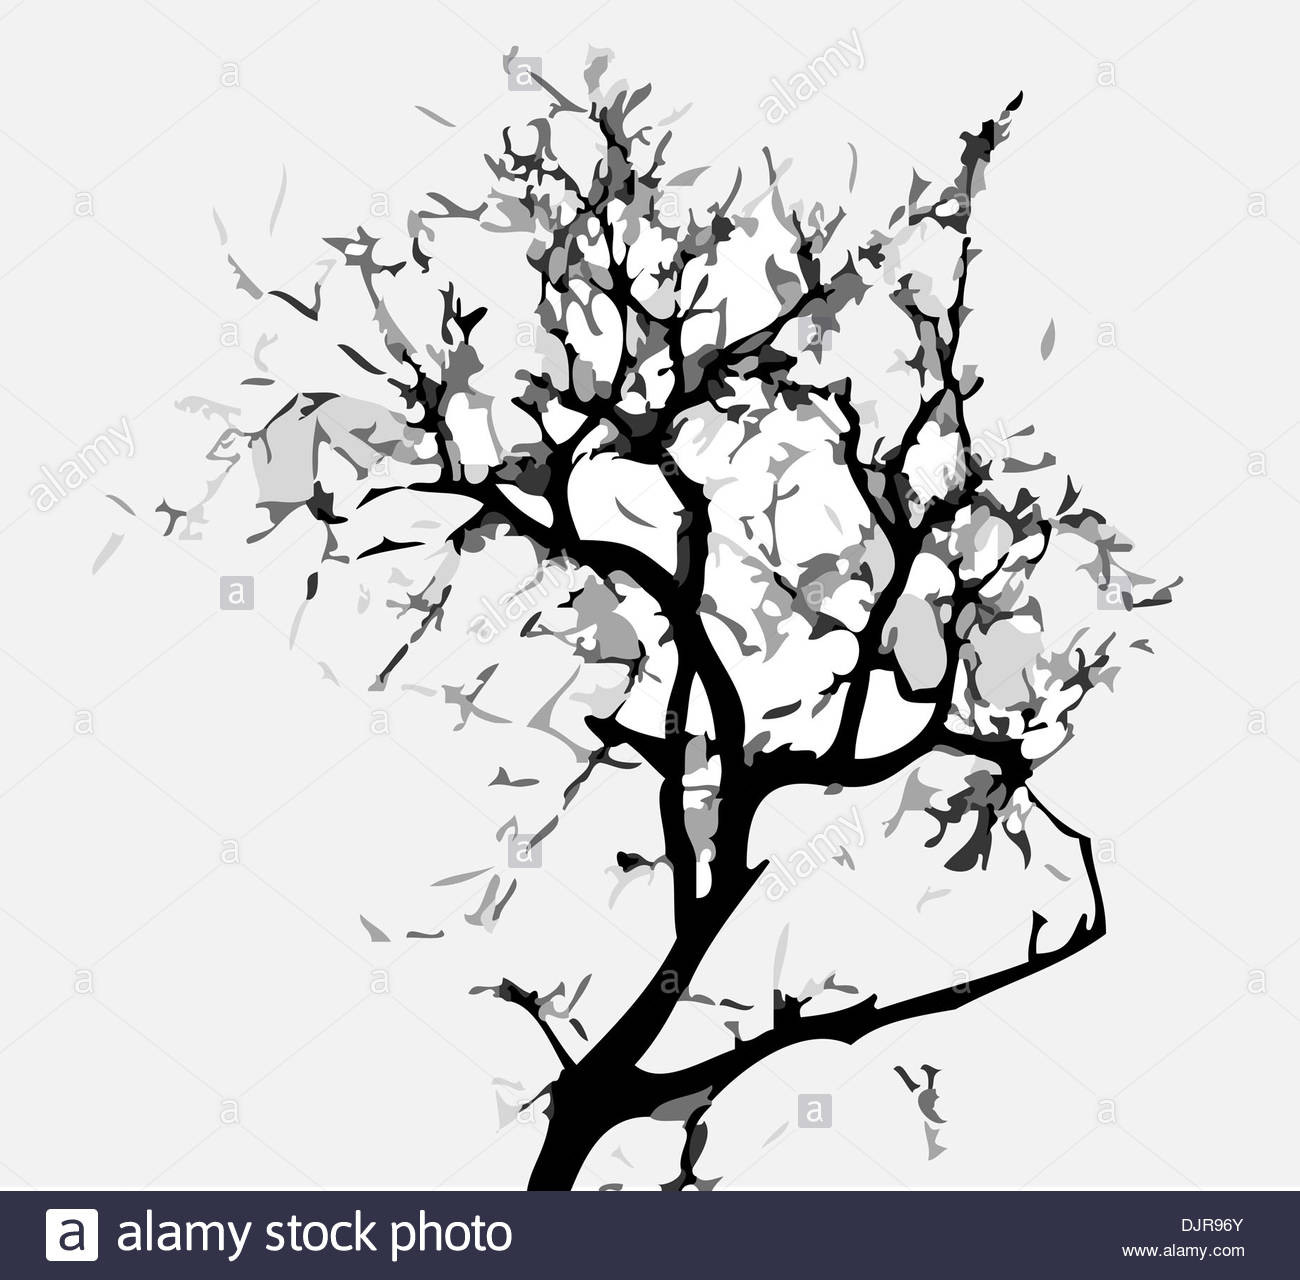 1300x1280 Abstract Tree , Tree, Tree Silhouette, Abstract Leaf, Tree Stock